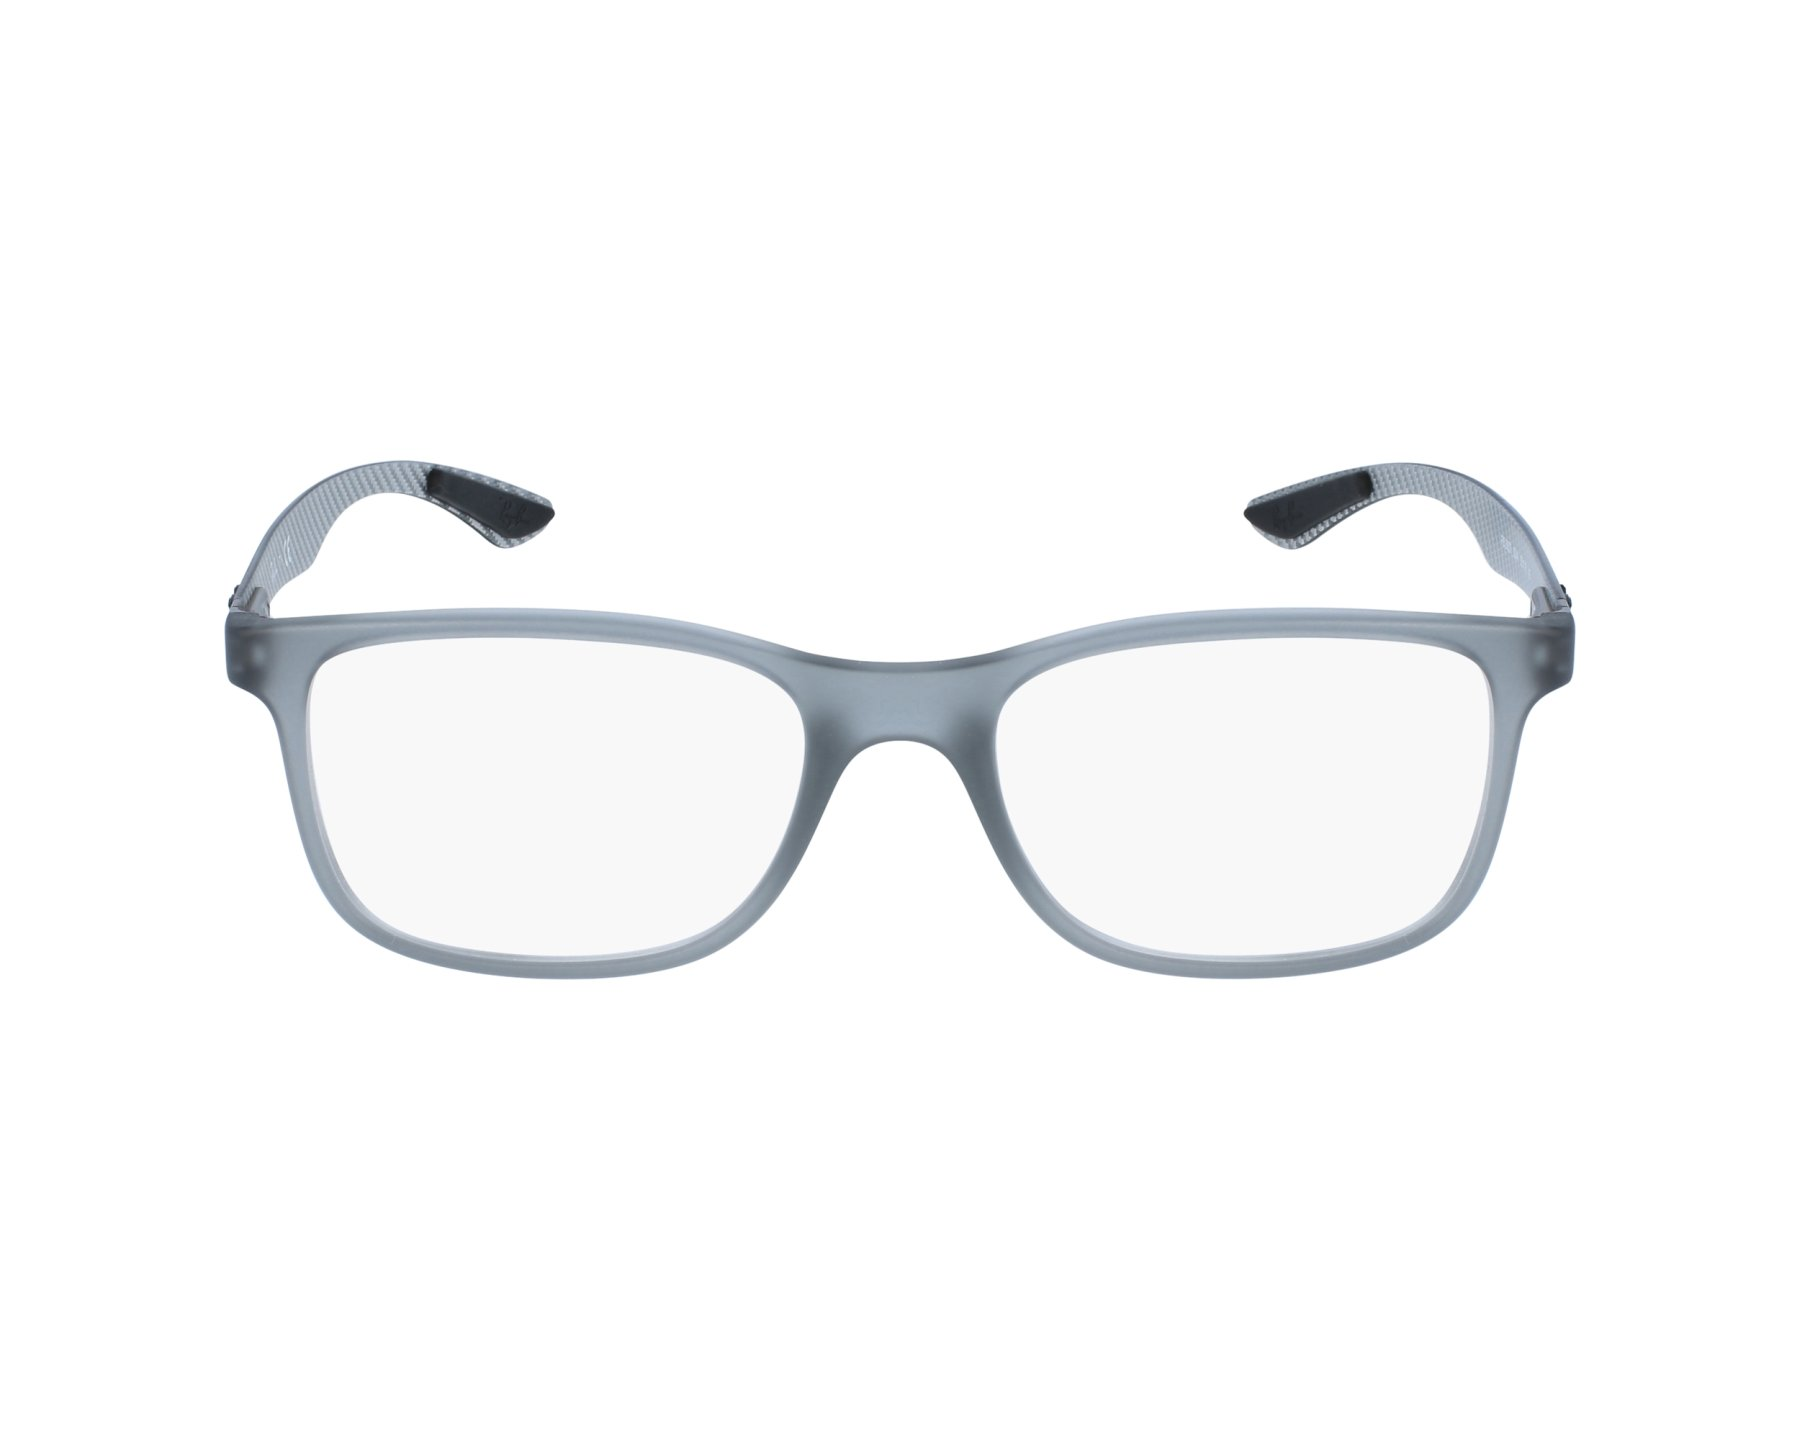 363a3adfd2 eyeglasses Ray-Ban RX-8903 5244 53-18 Grey profile view